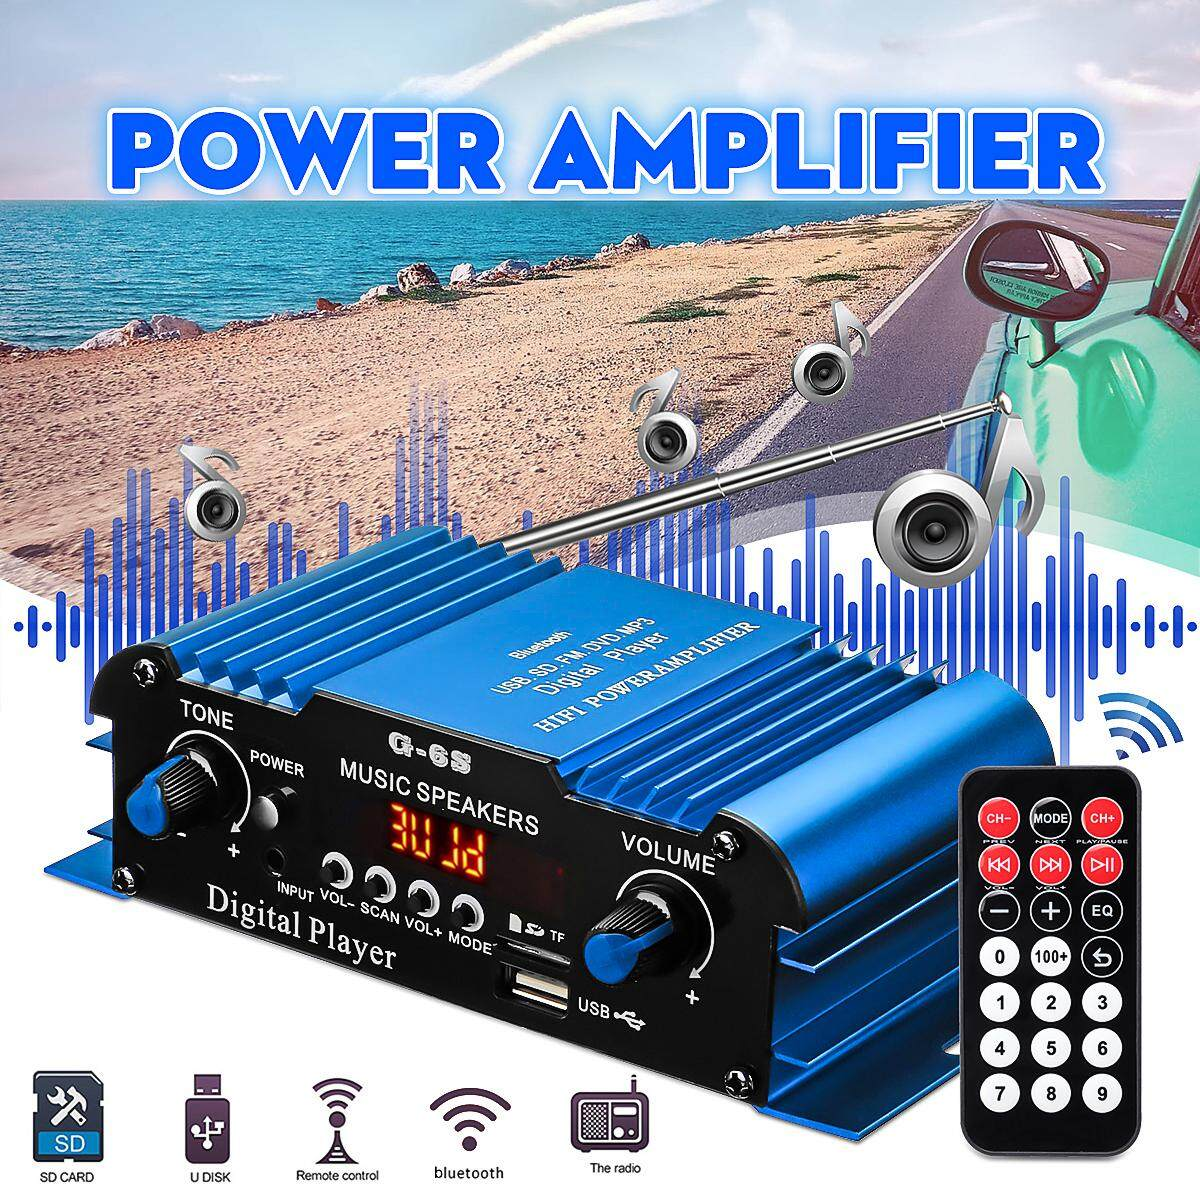 DC 12 V 30 W 2CH Bluetooth Penguat Daya Mini Pengendali Jarak Jauh HI FI Digital Power Stereo Audio Bass SD AUX FM RMS Mobil Rumah -Biru